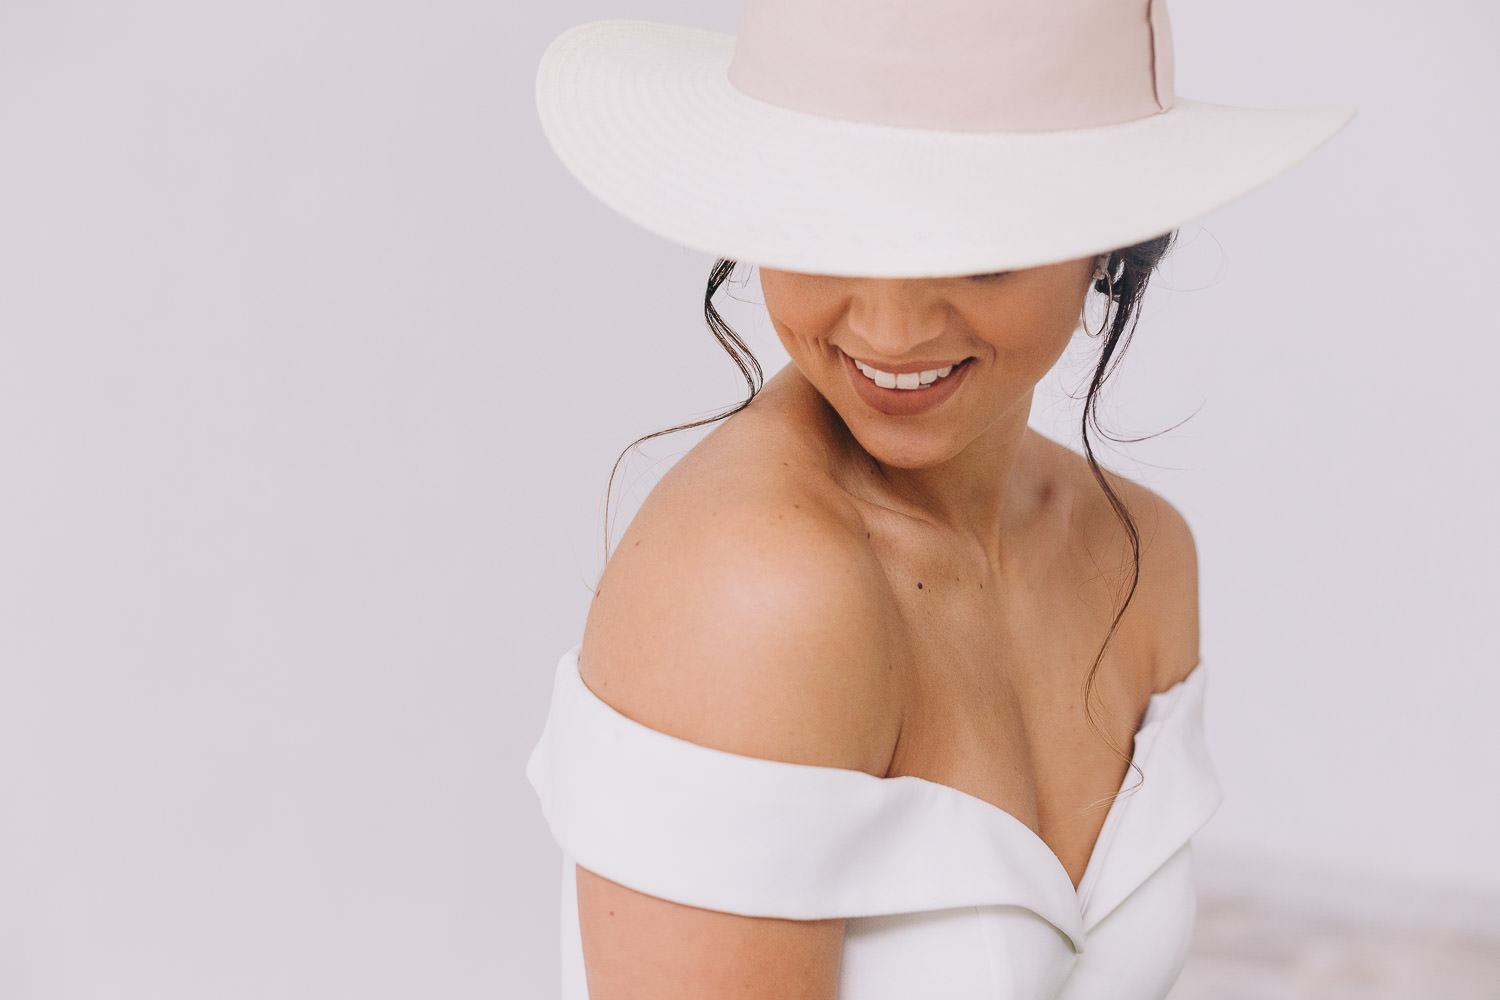 Boho bride with a hat and shoulder less wedding dress smiling